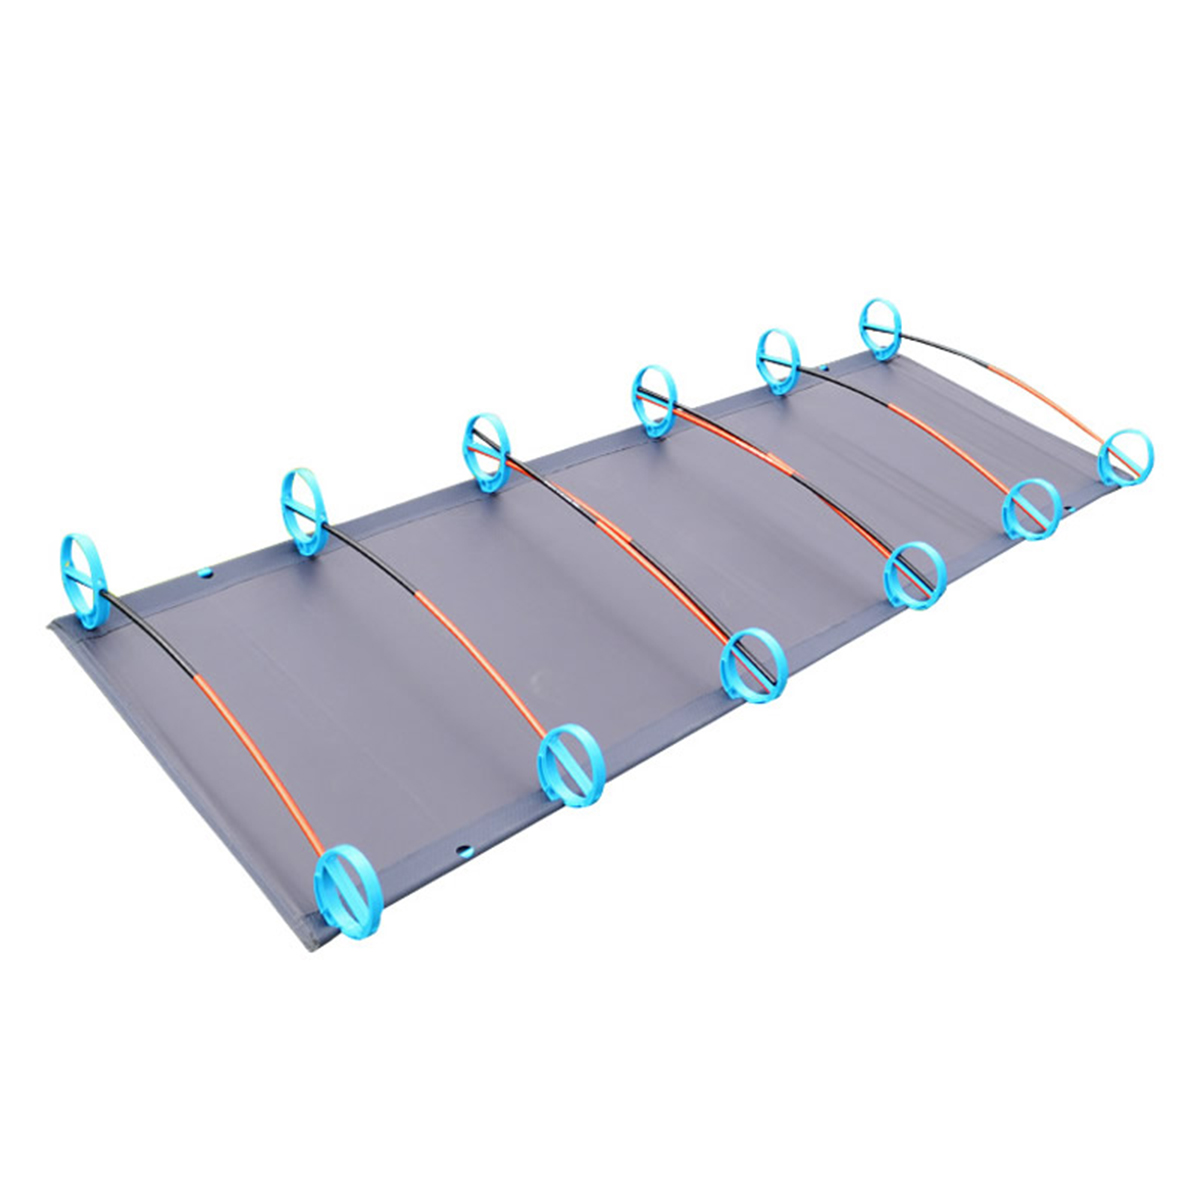 Portable Outdoor Bed Cot Strong Foldable Bed Camping Military Hiking Mat Medical Lightweight Table With Aluminium Frame 2019 NewPortable Outdoor Bed Cot Strong Foldable Bed Camping Military Hiking Mat Medical Lightweight Table With Aluminium Frame 2019 New